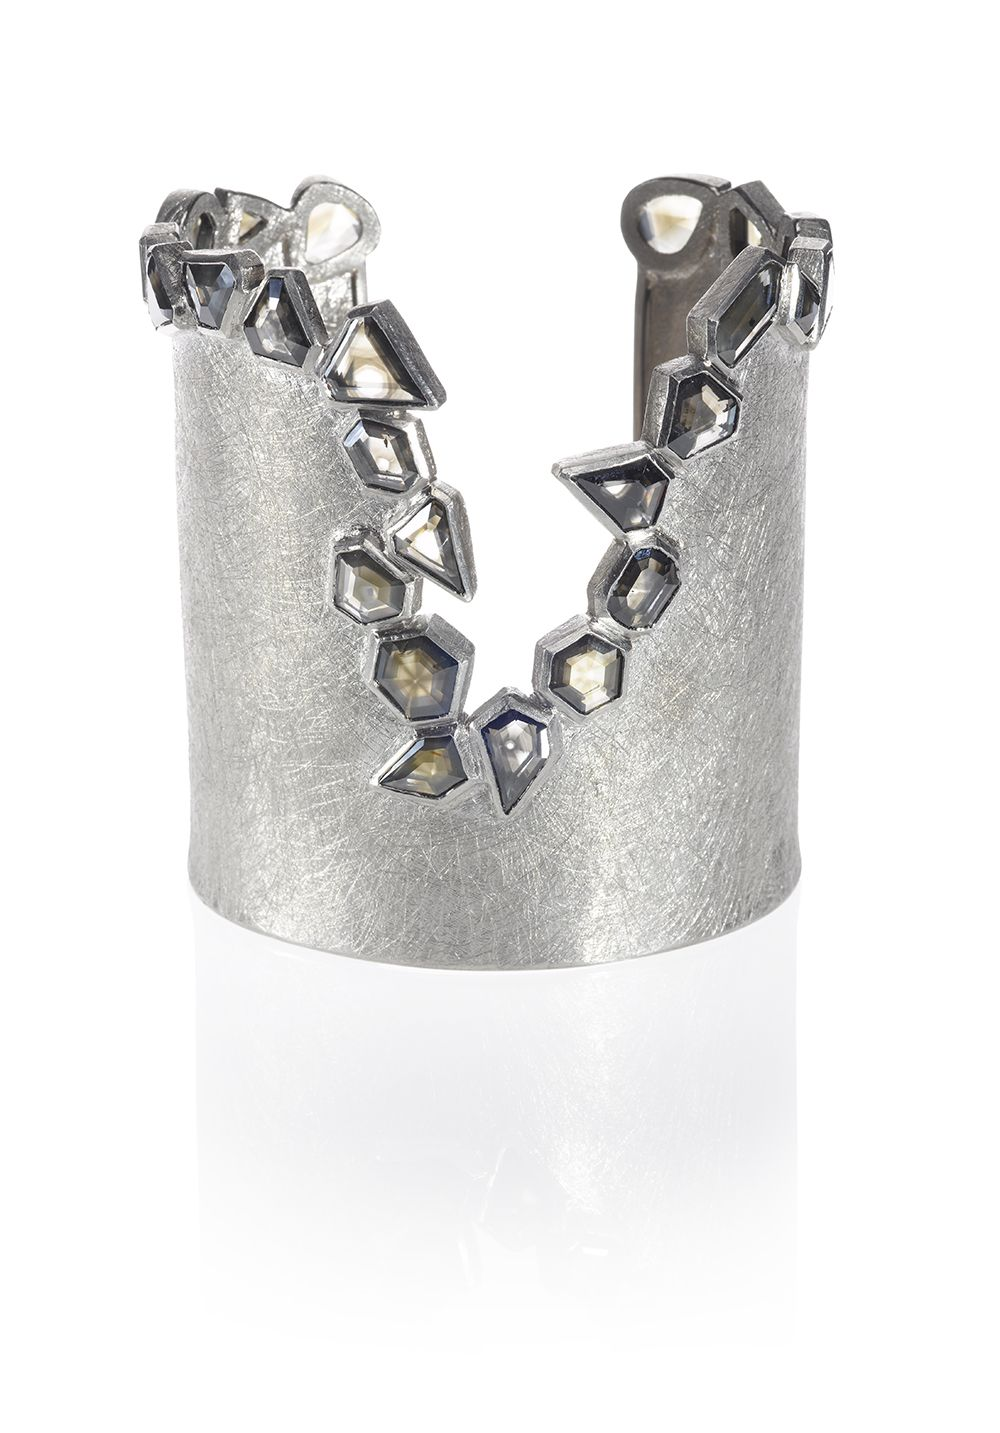 One of toddus latest cuff designs palladium with faceted diamonds